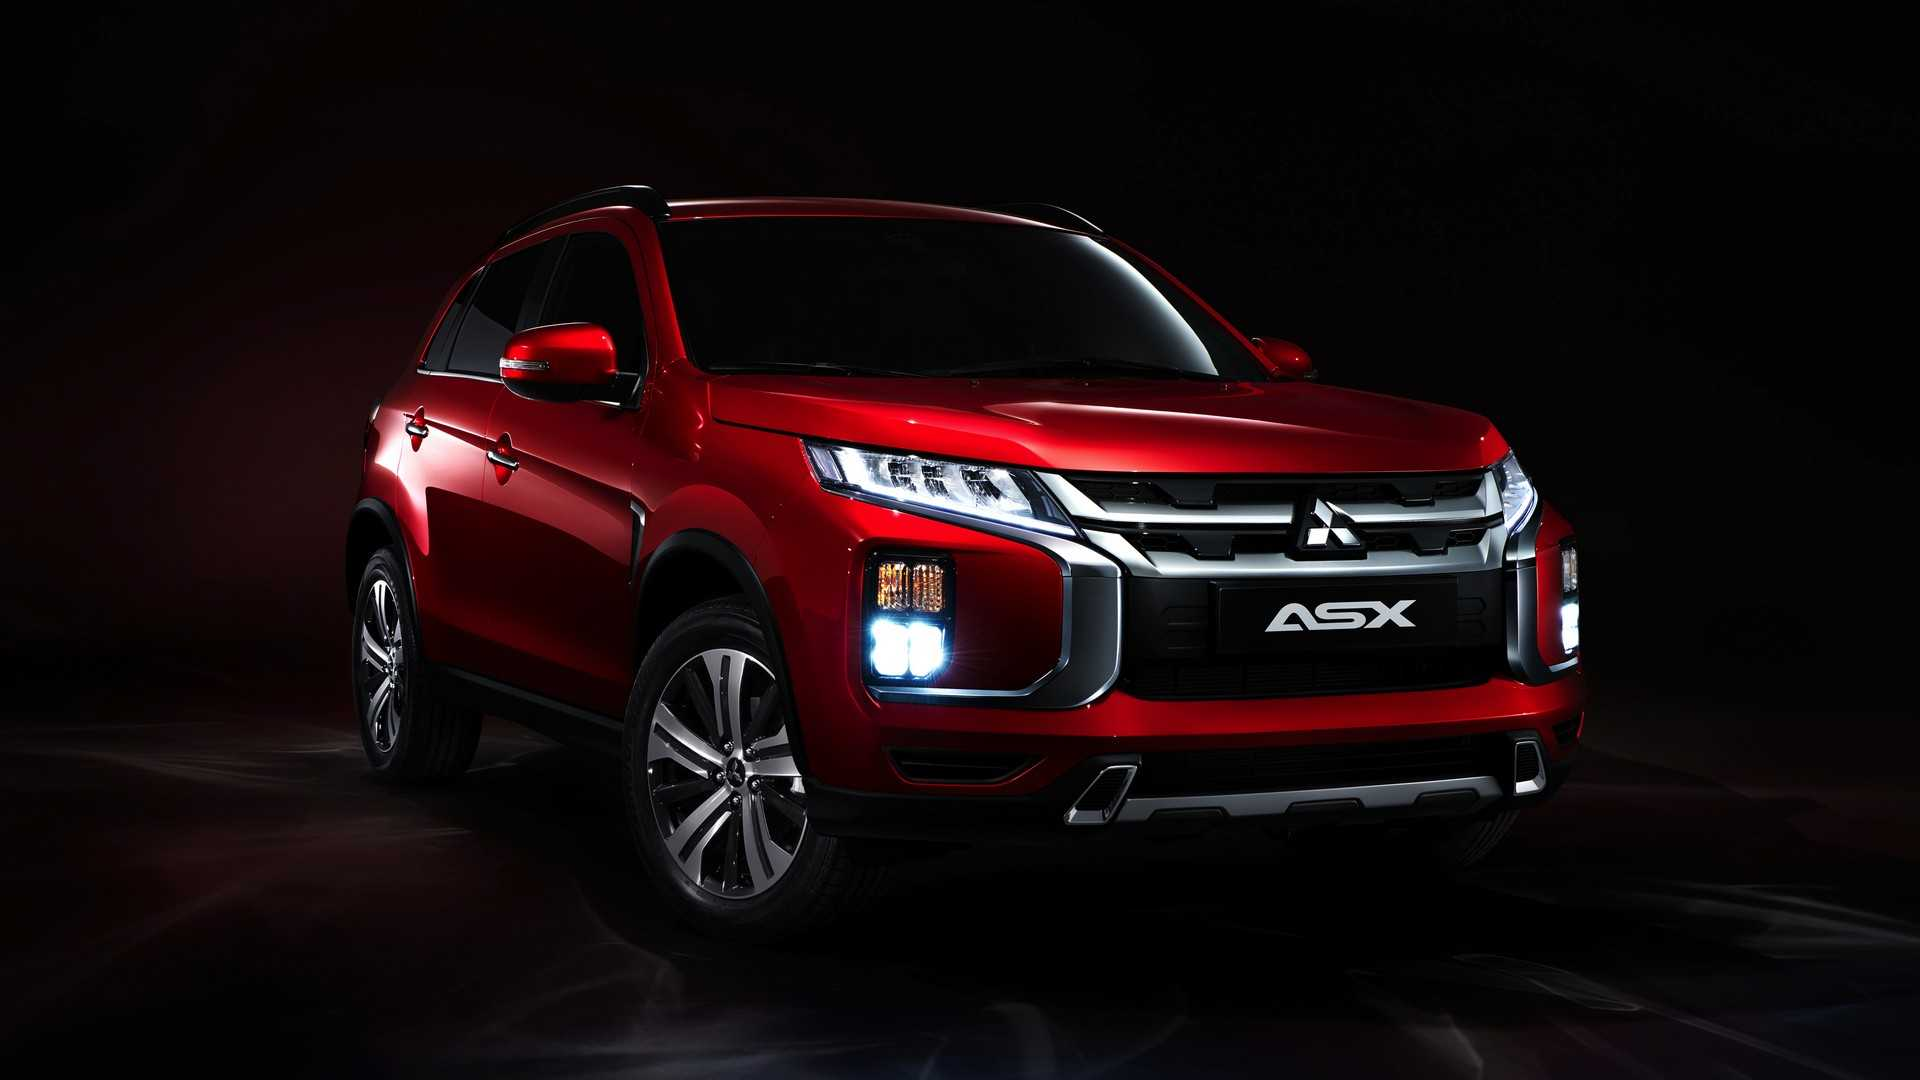 37 Great Mitsubishi Asx Facelift 2020 Specs for Mitsubishi Asx Facelift 2020